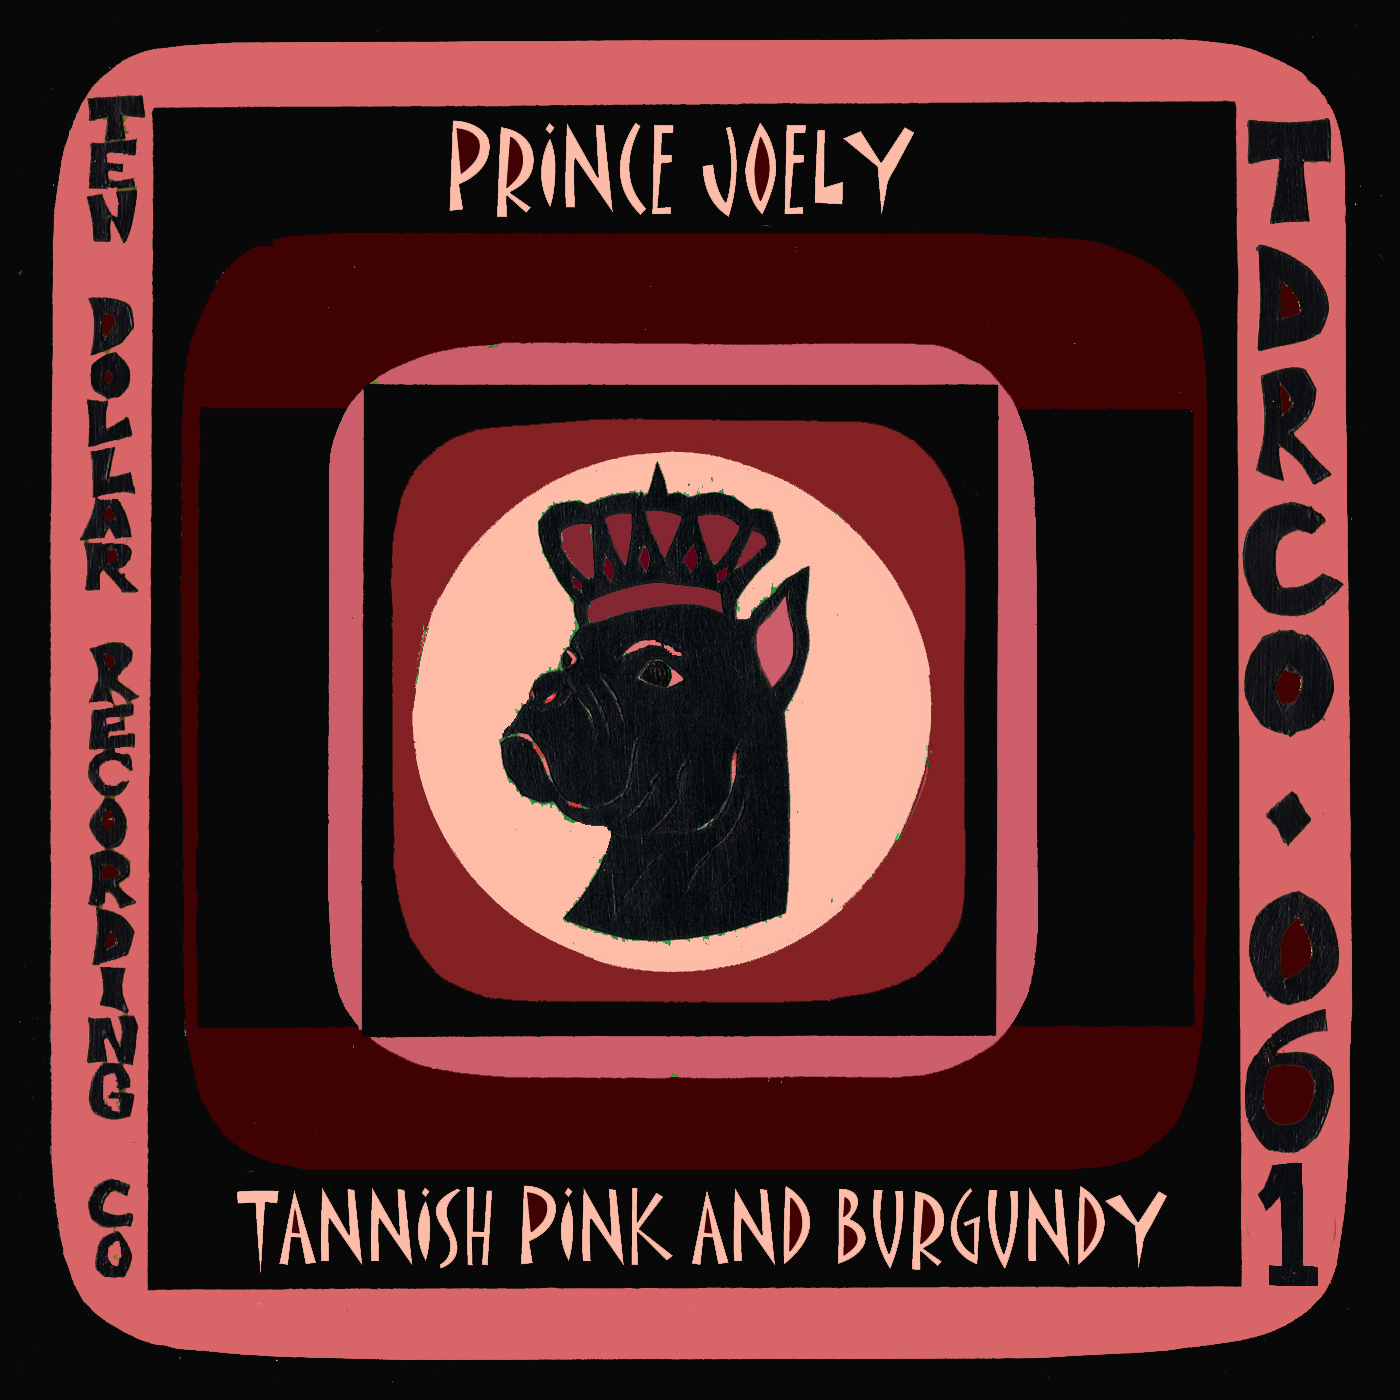 Prince Joely - Tannish Pink and Burgundy (Single)